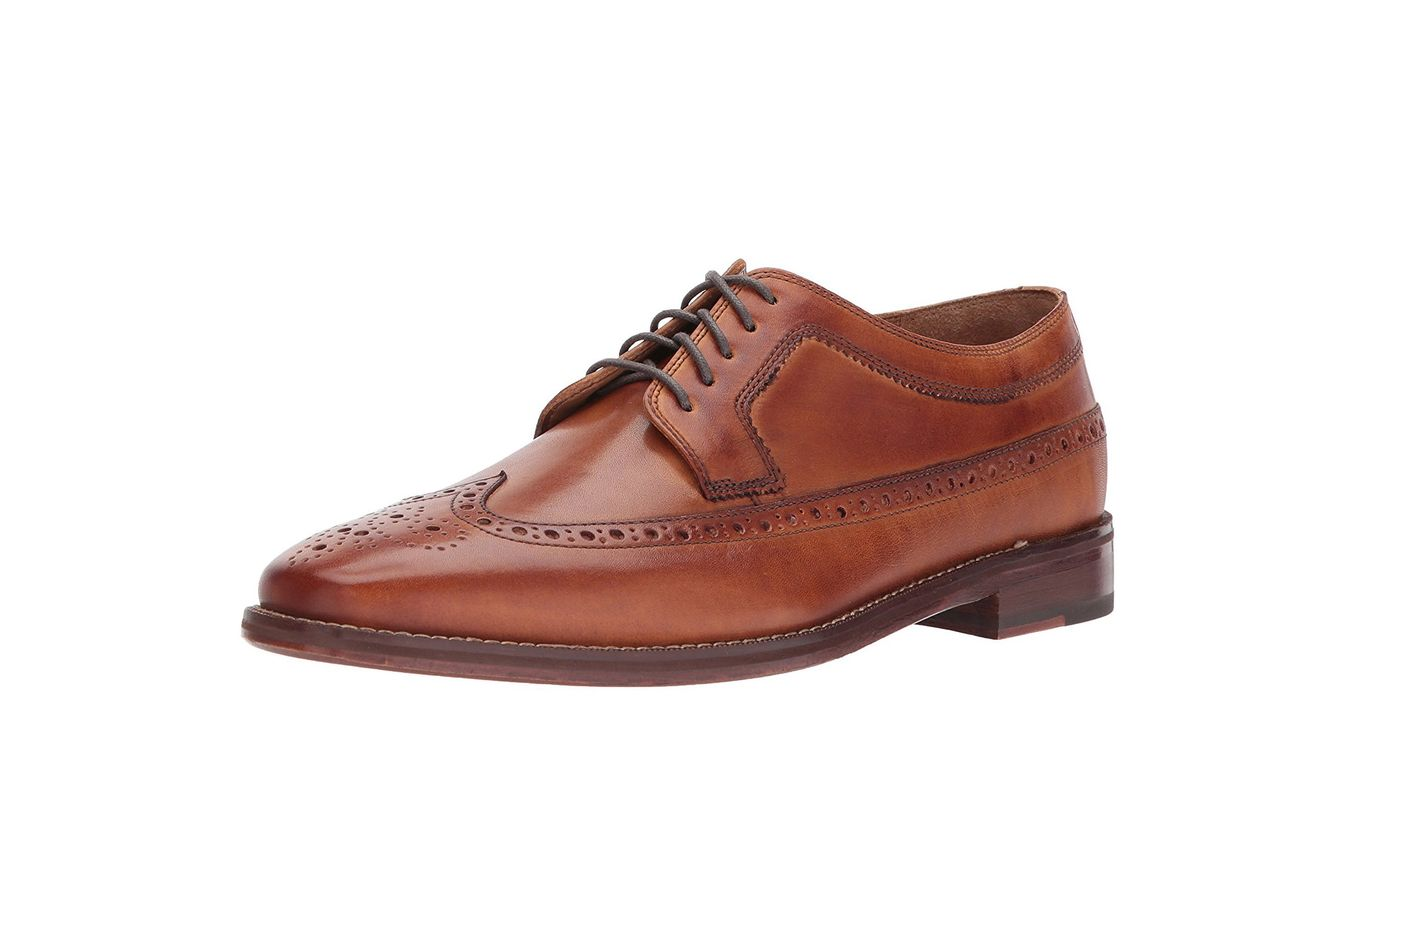 Cole Haan Men's Giraldo LX Wing OX II Oxford